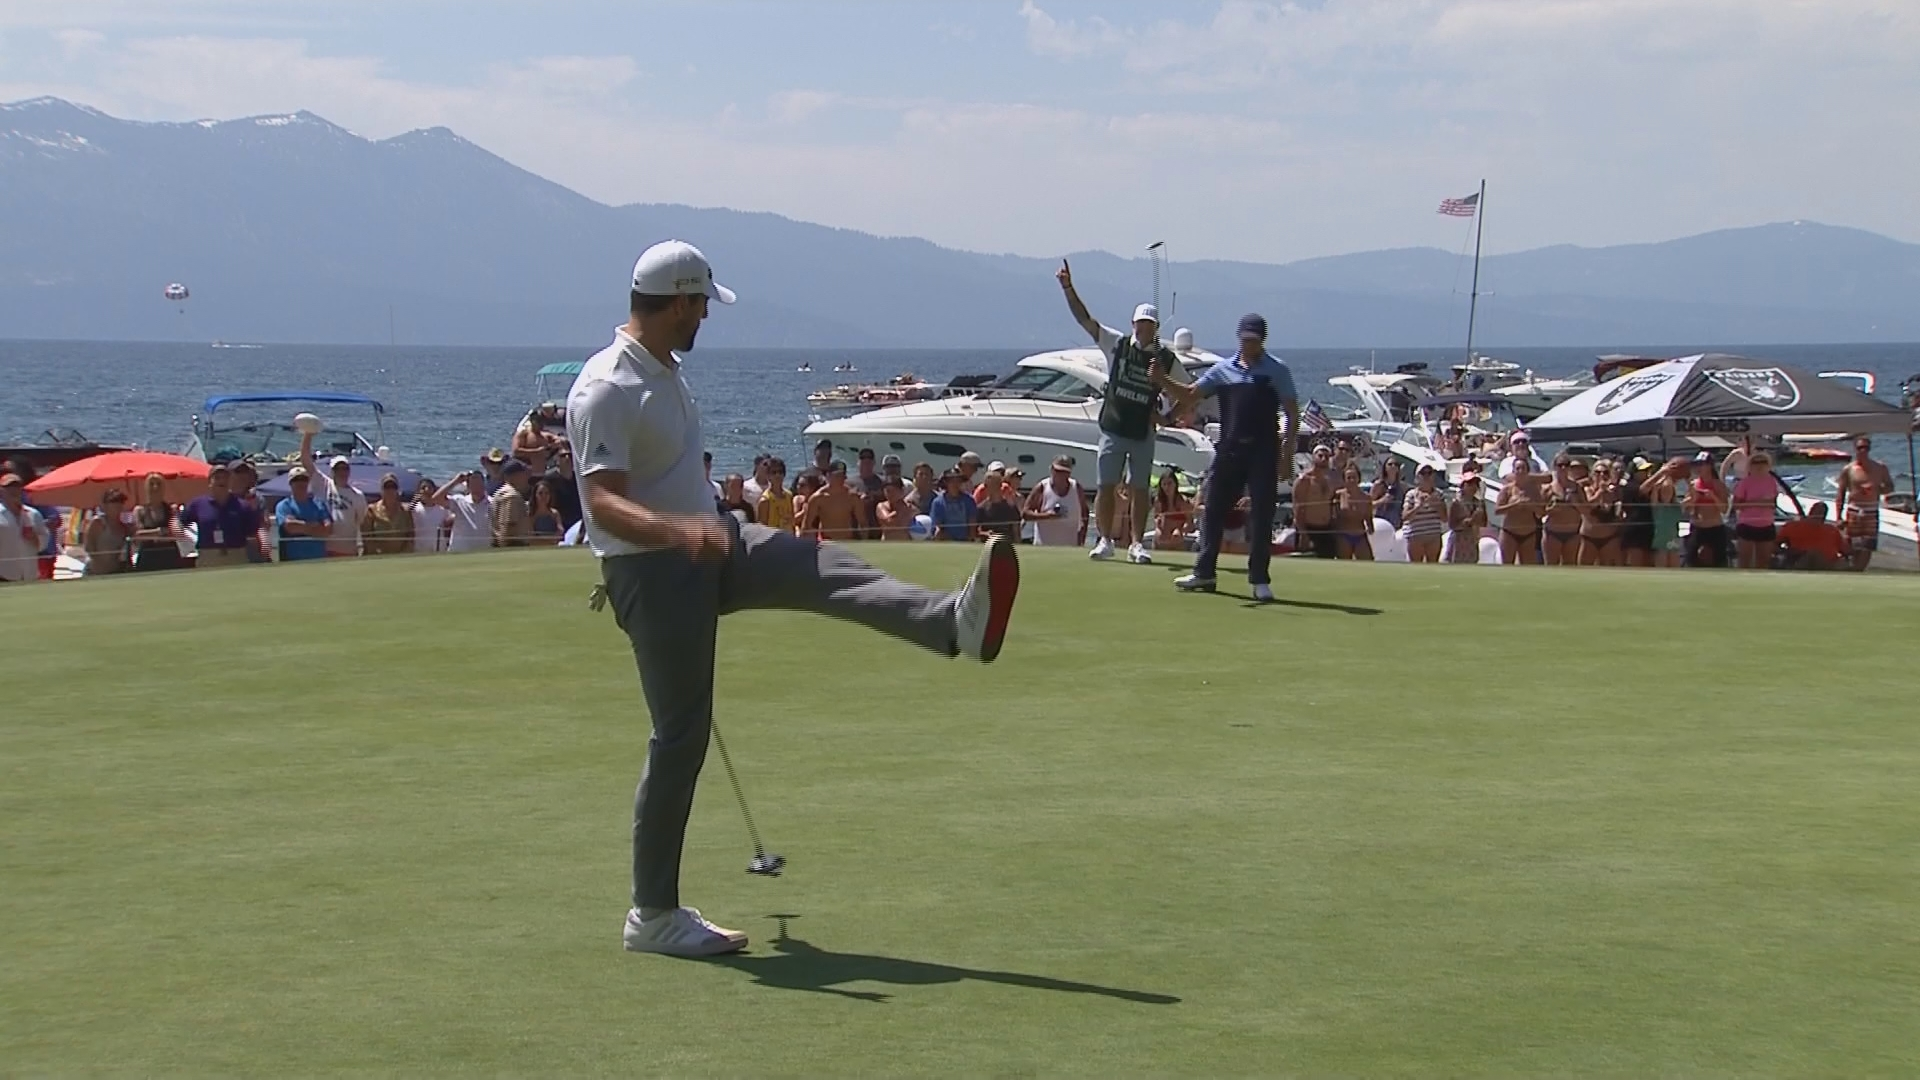 http://golfchannel.akamaized.net/ramp/102/963/2017 AMERICAN CENTURY CHAMPIONSHIP DAY1 - Rodgers.jpg